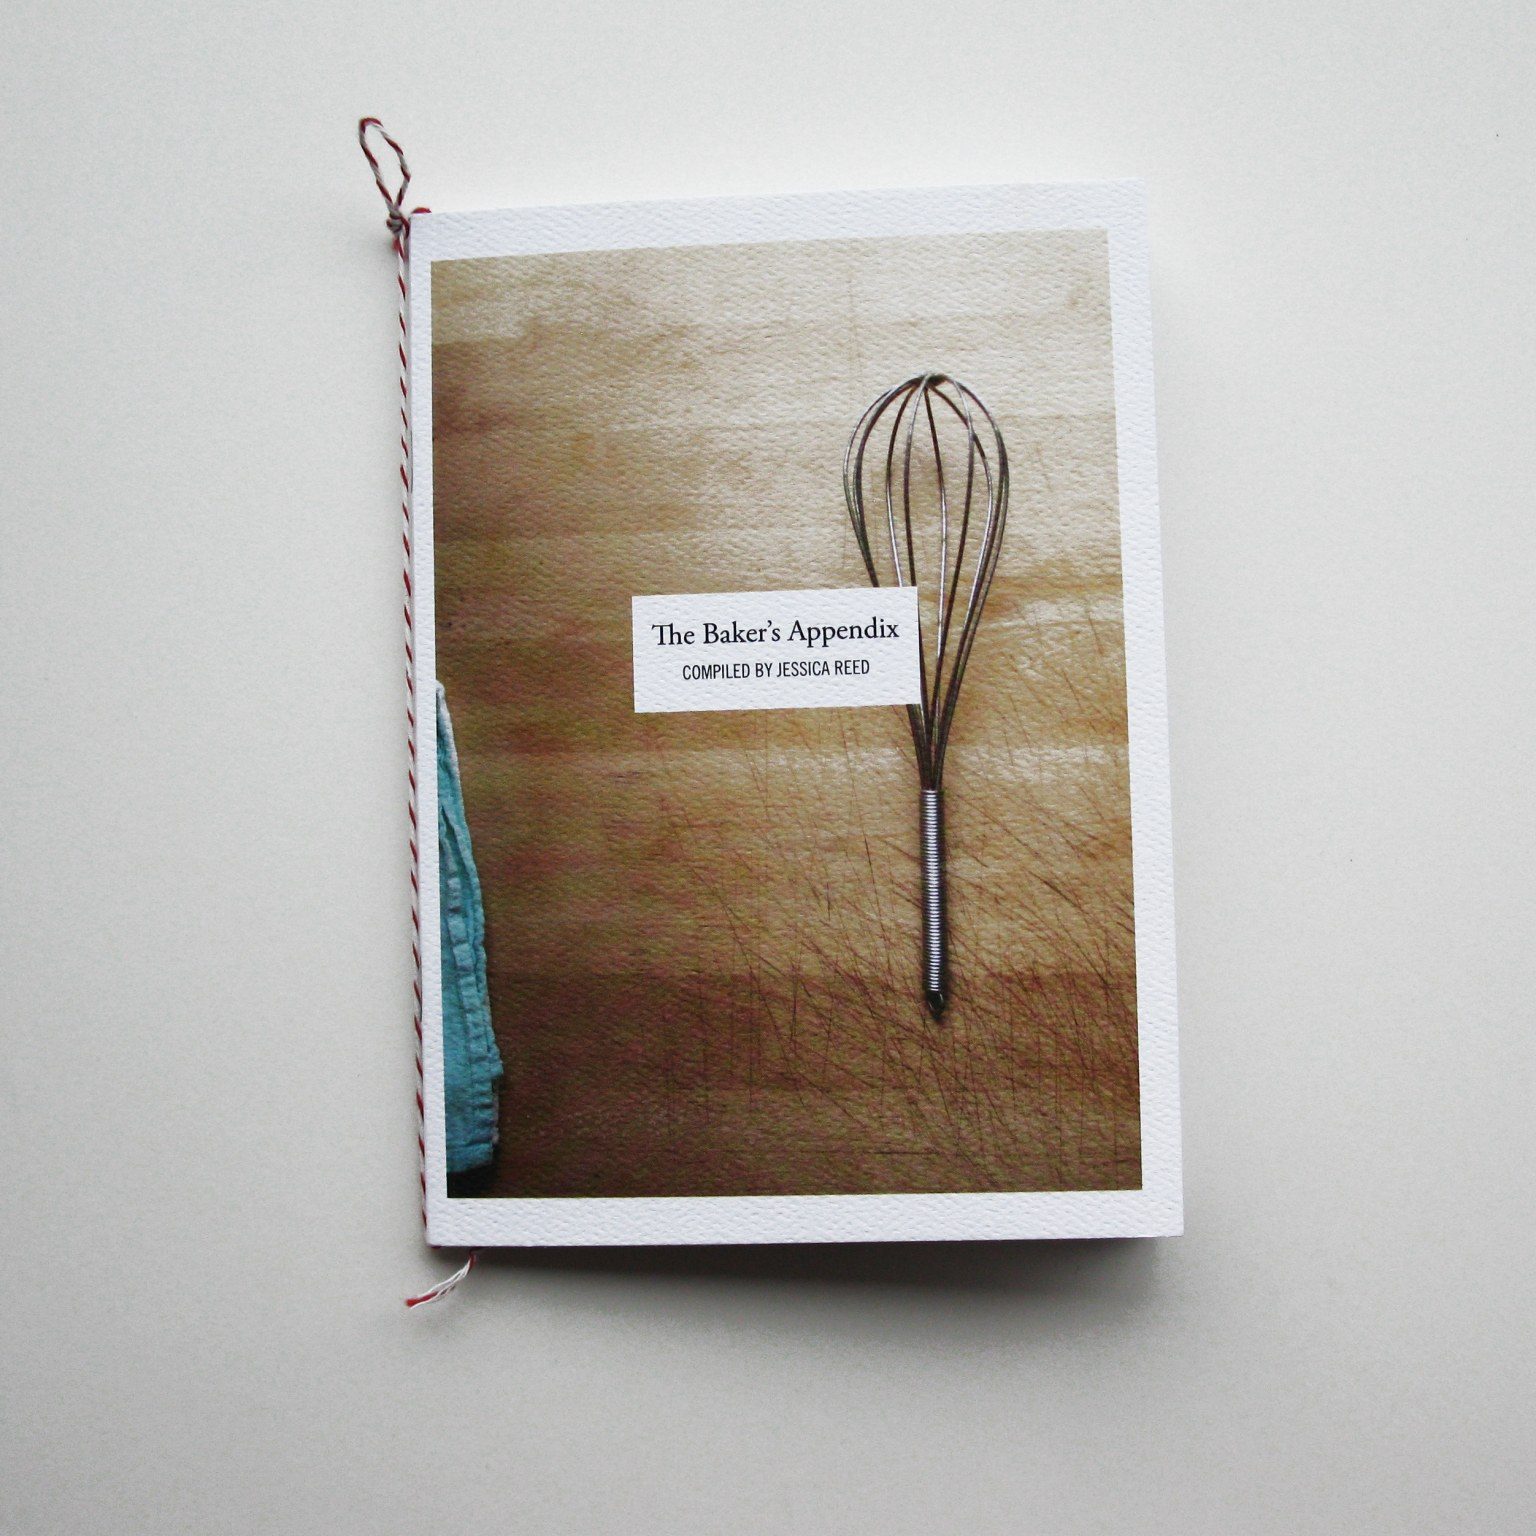 The Baker's Appendix, Self-Published Edition